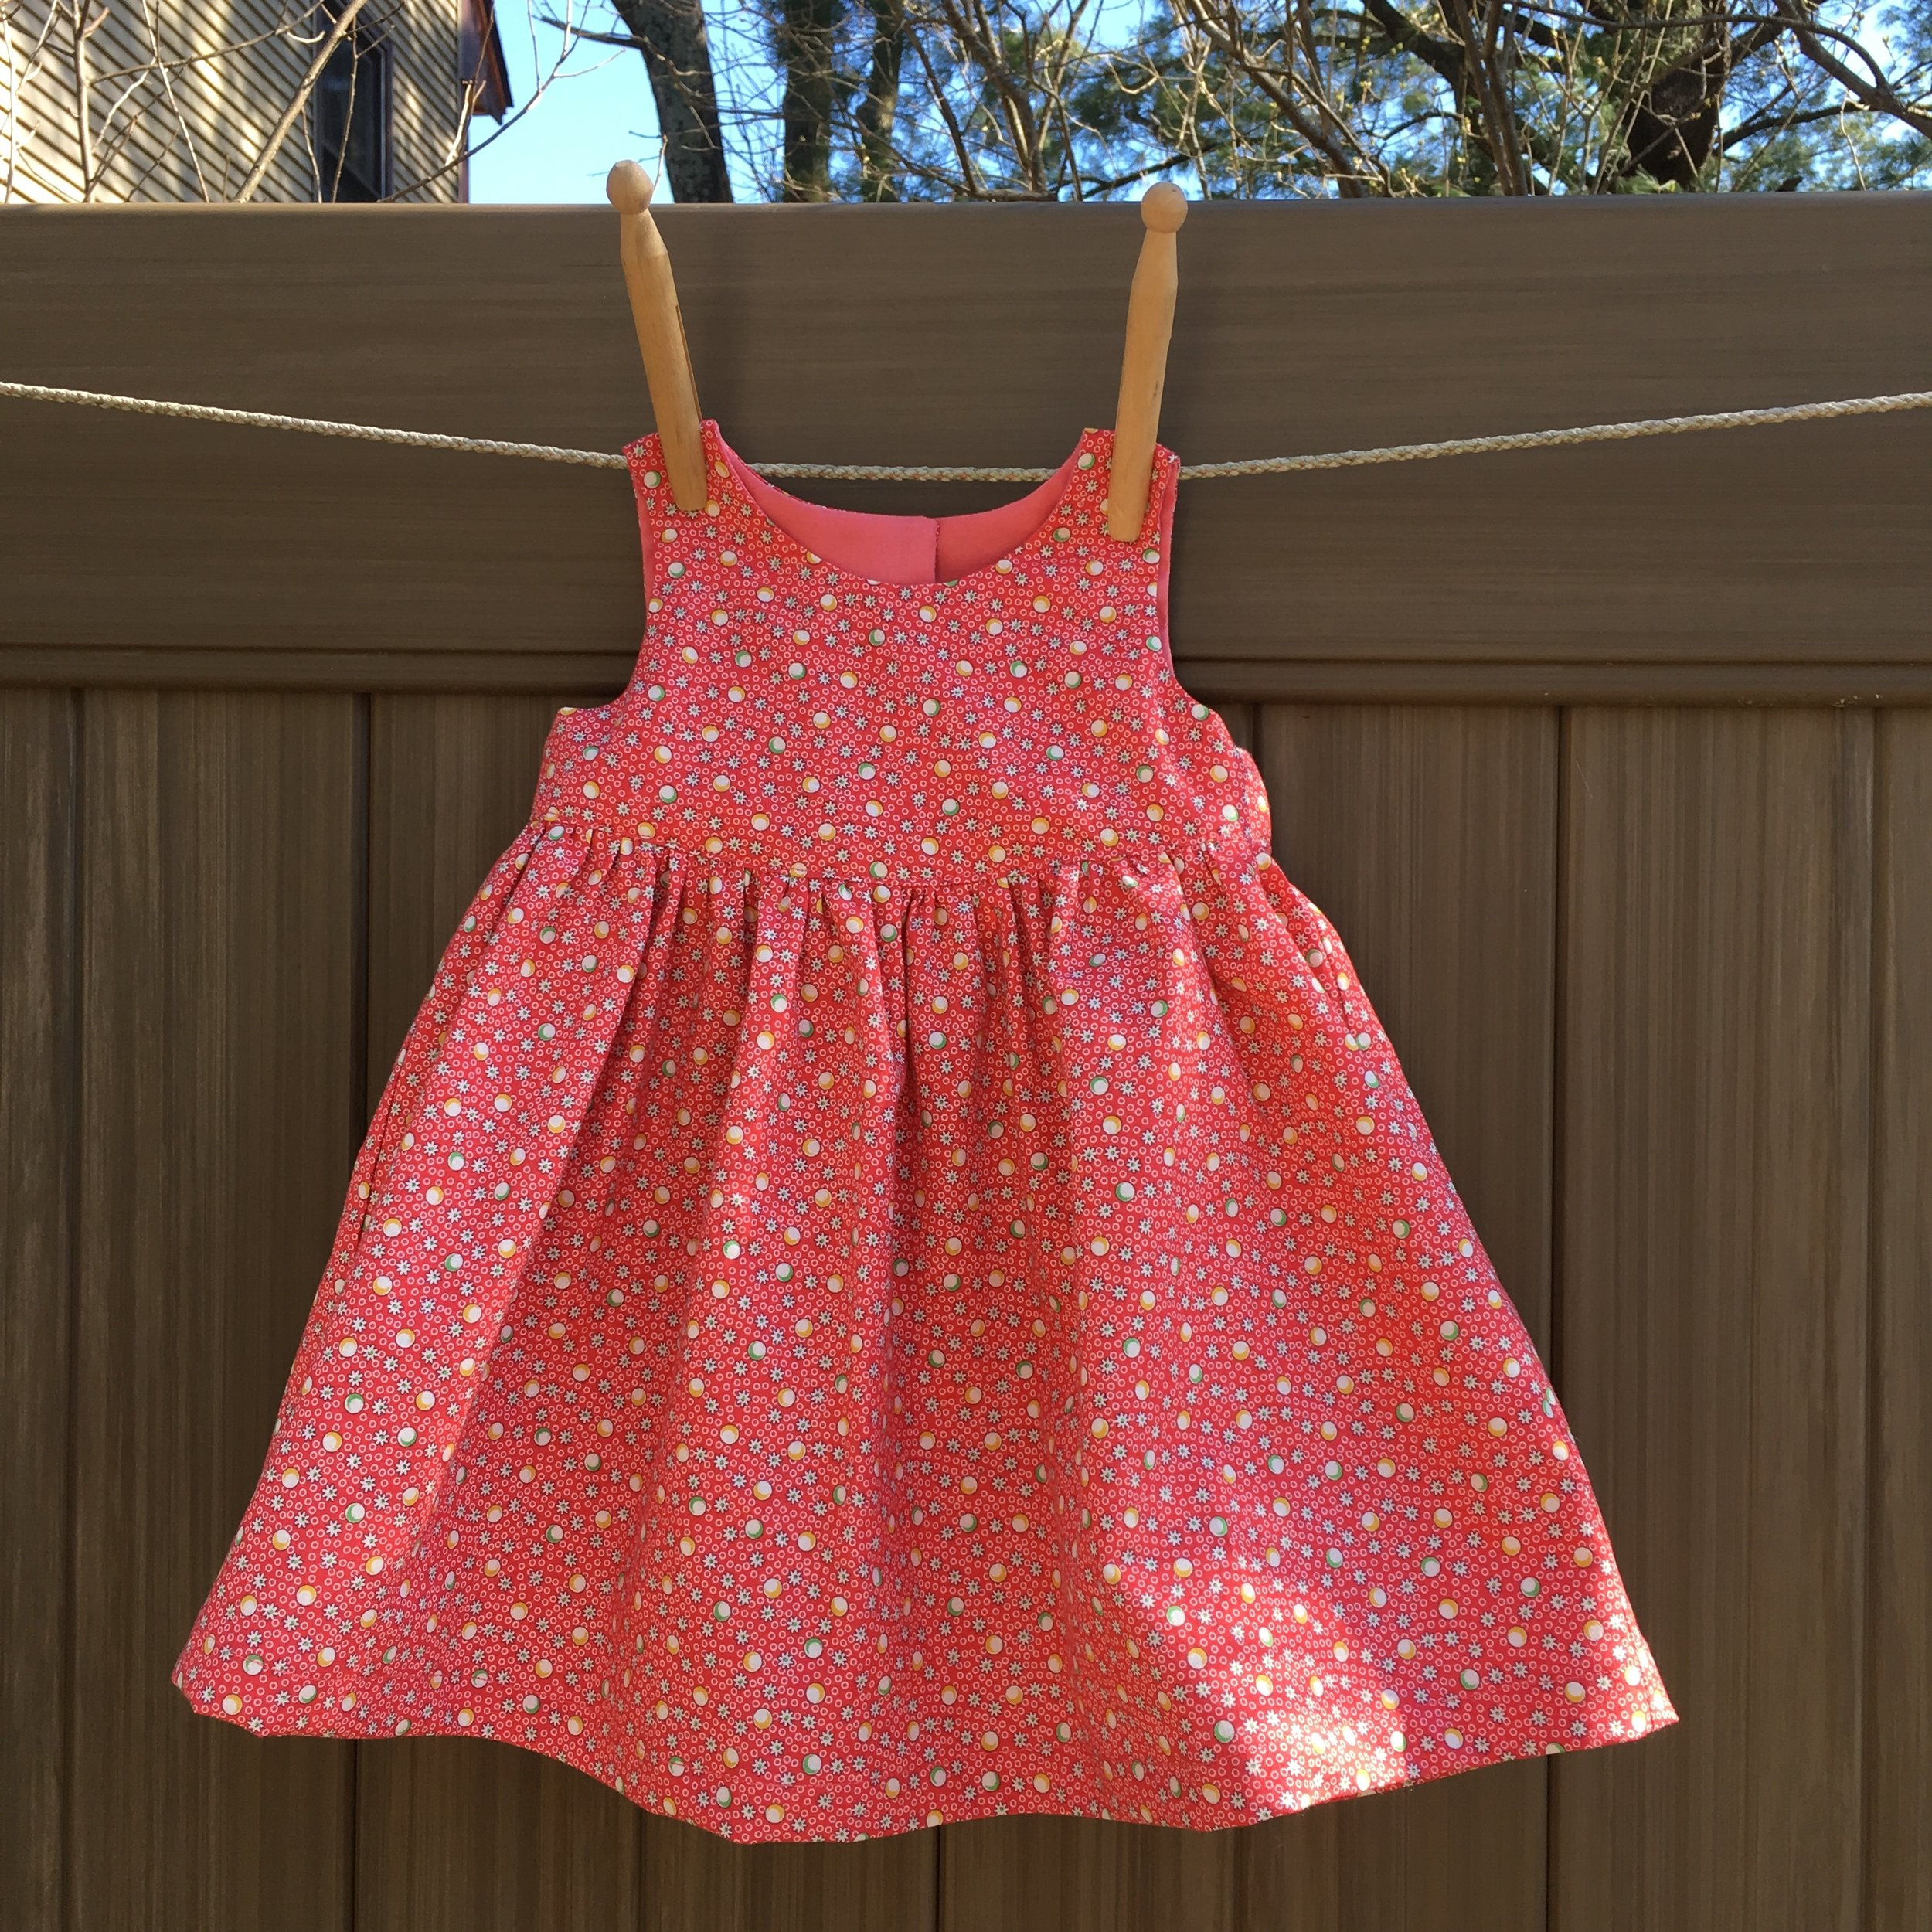 e78abcead505 Baby Dress, Size Small (13-18 lbs), NEWLOOK 6568